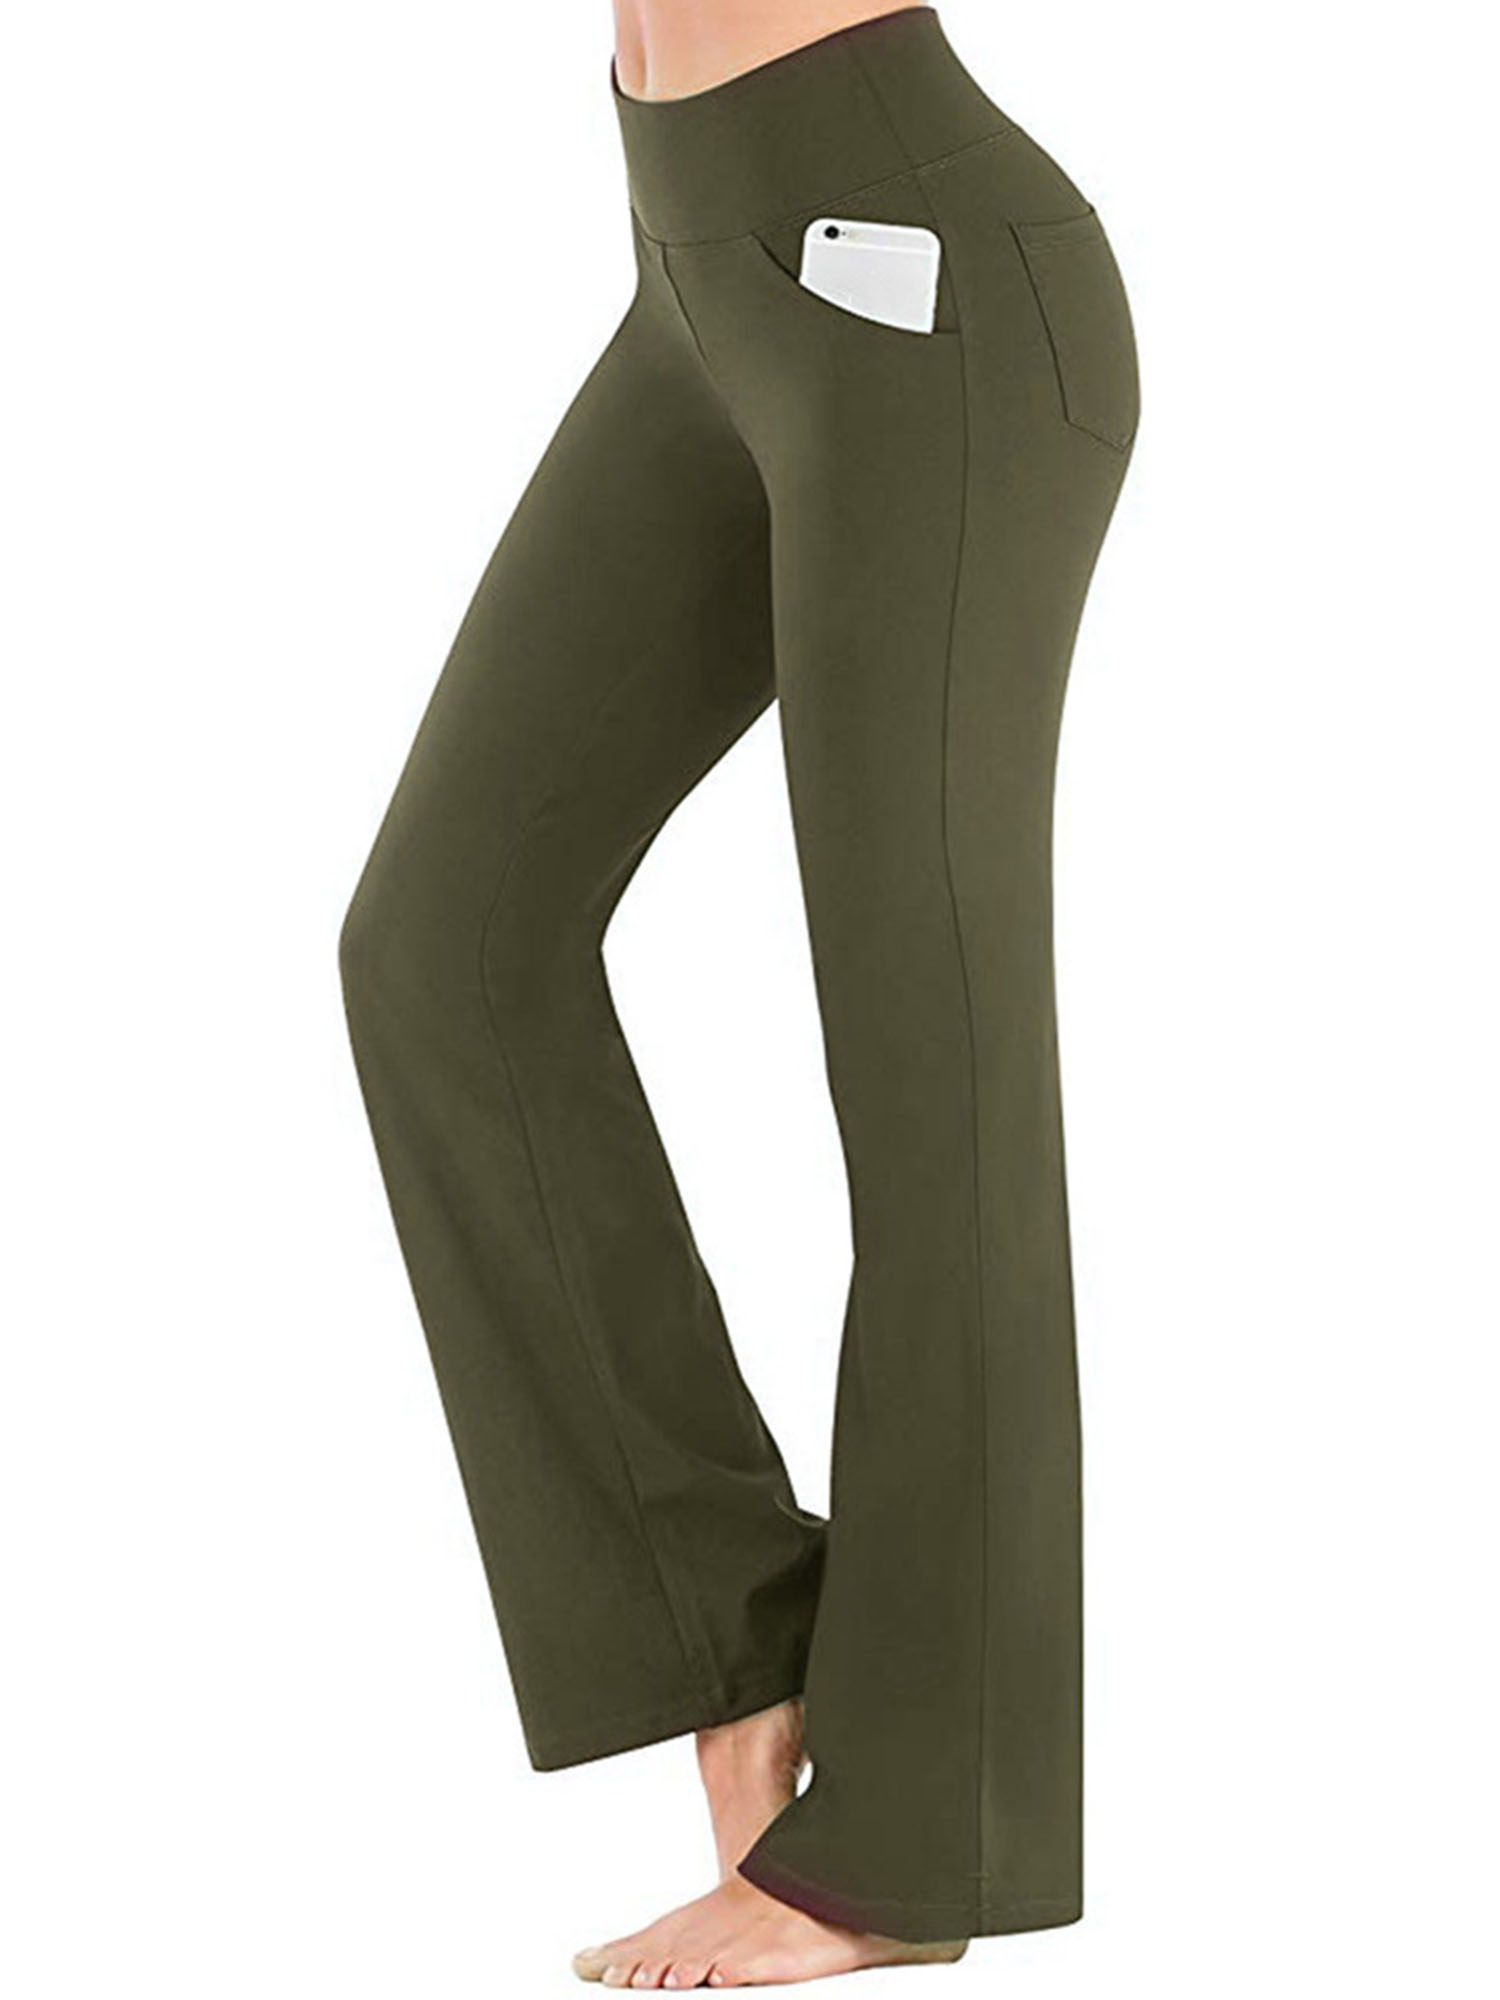 High Waist Bootcut Yoga Capris Crop Pants Pockets Tummy Control Workout Running Casual 3//4 Bootleg Straight Flare Trousers Jogging Yoga Trousers Fitnes Gym Sports Tights Leggings Womens Yoga Trousers